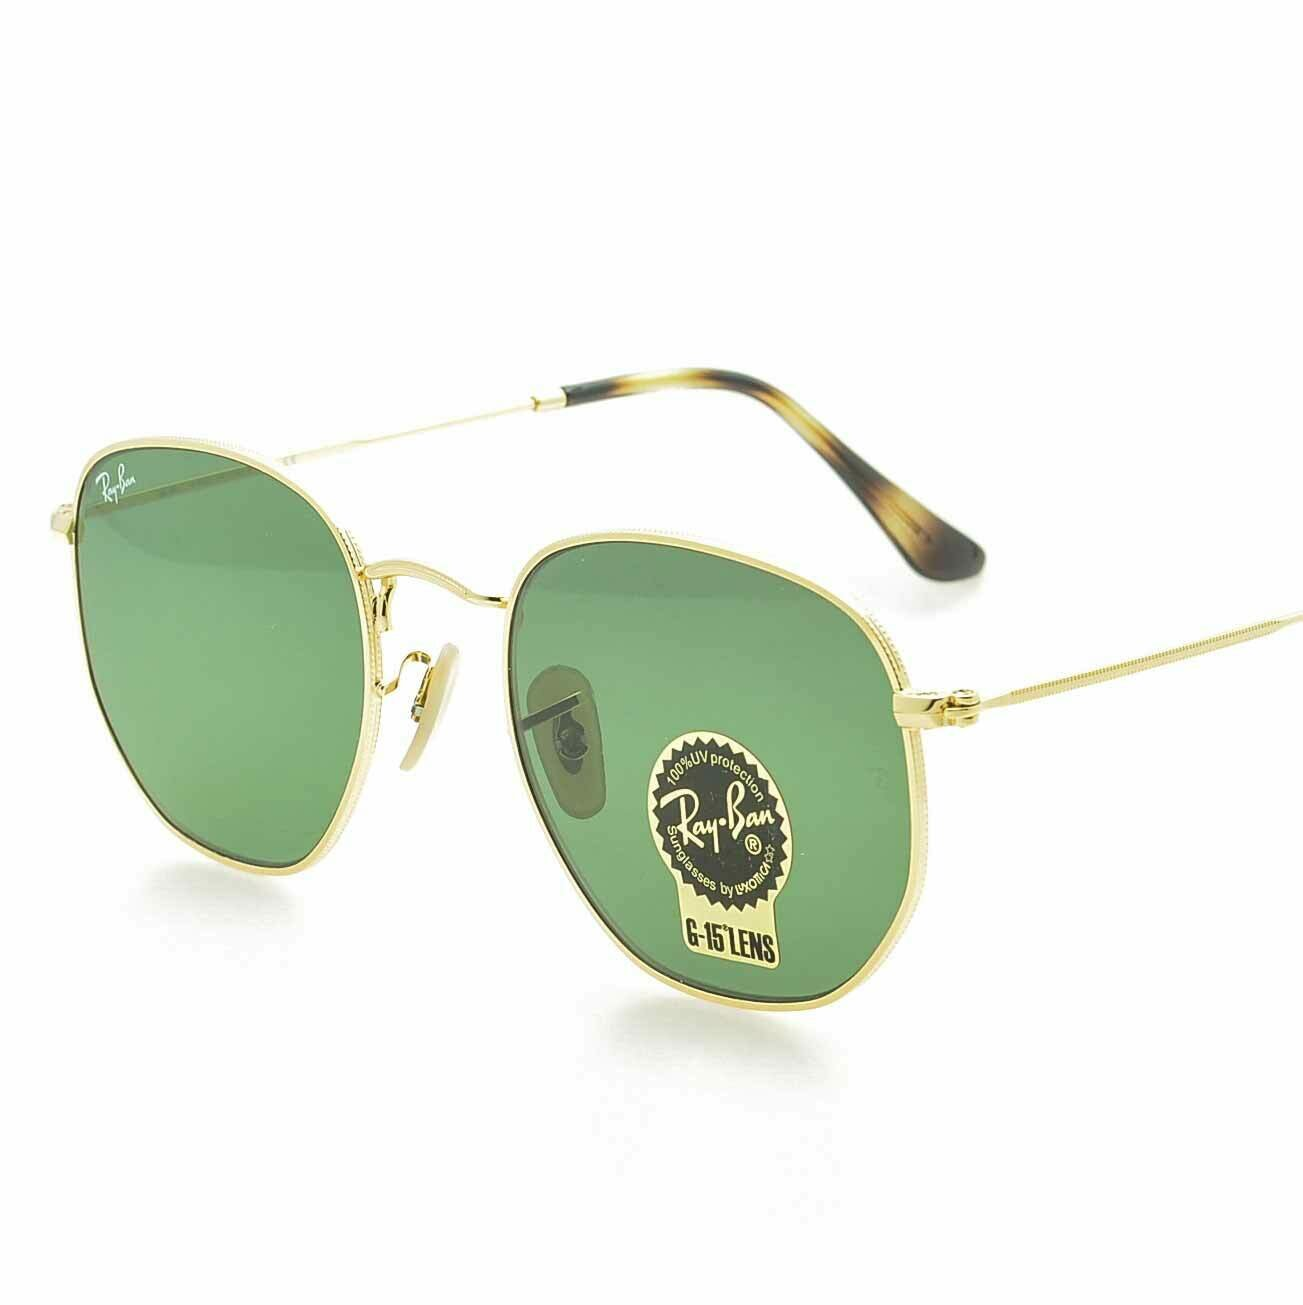 RAY BAN NOT MENTIONED